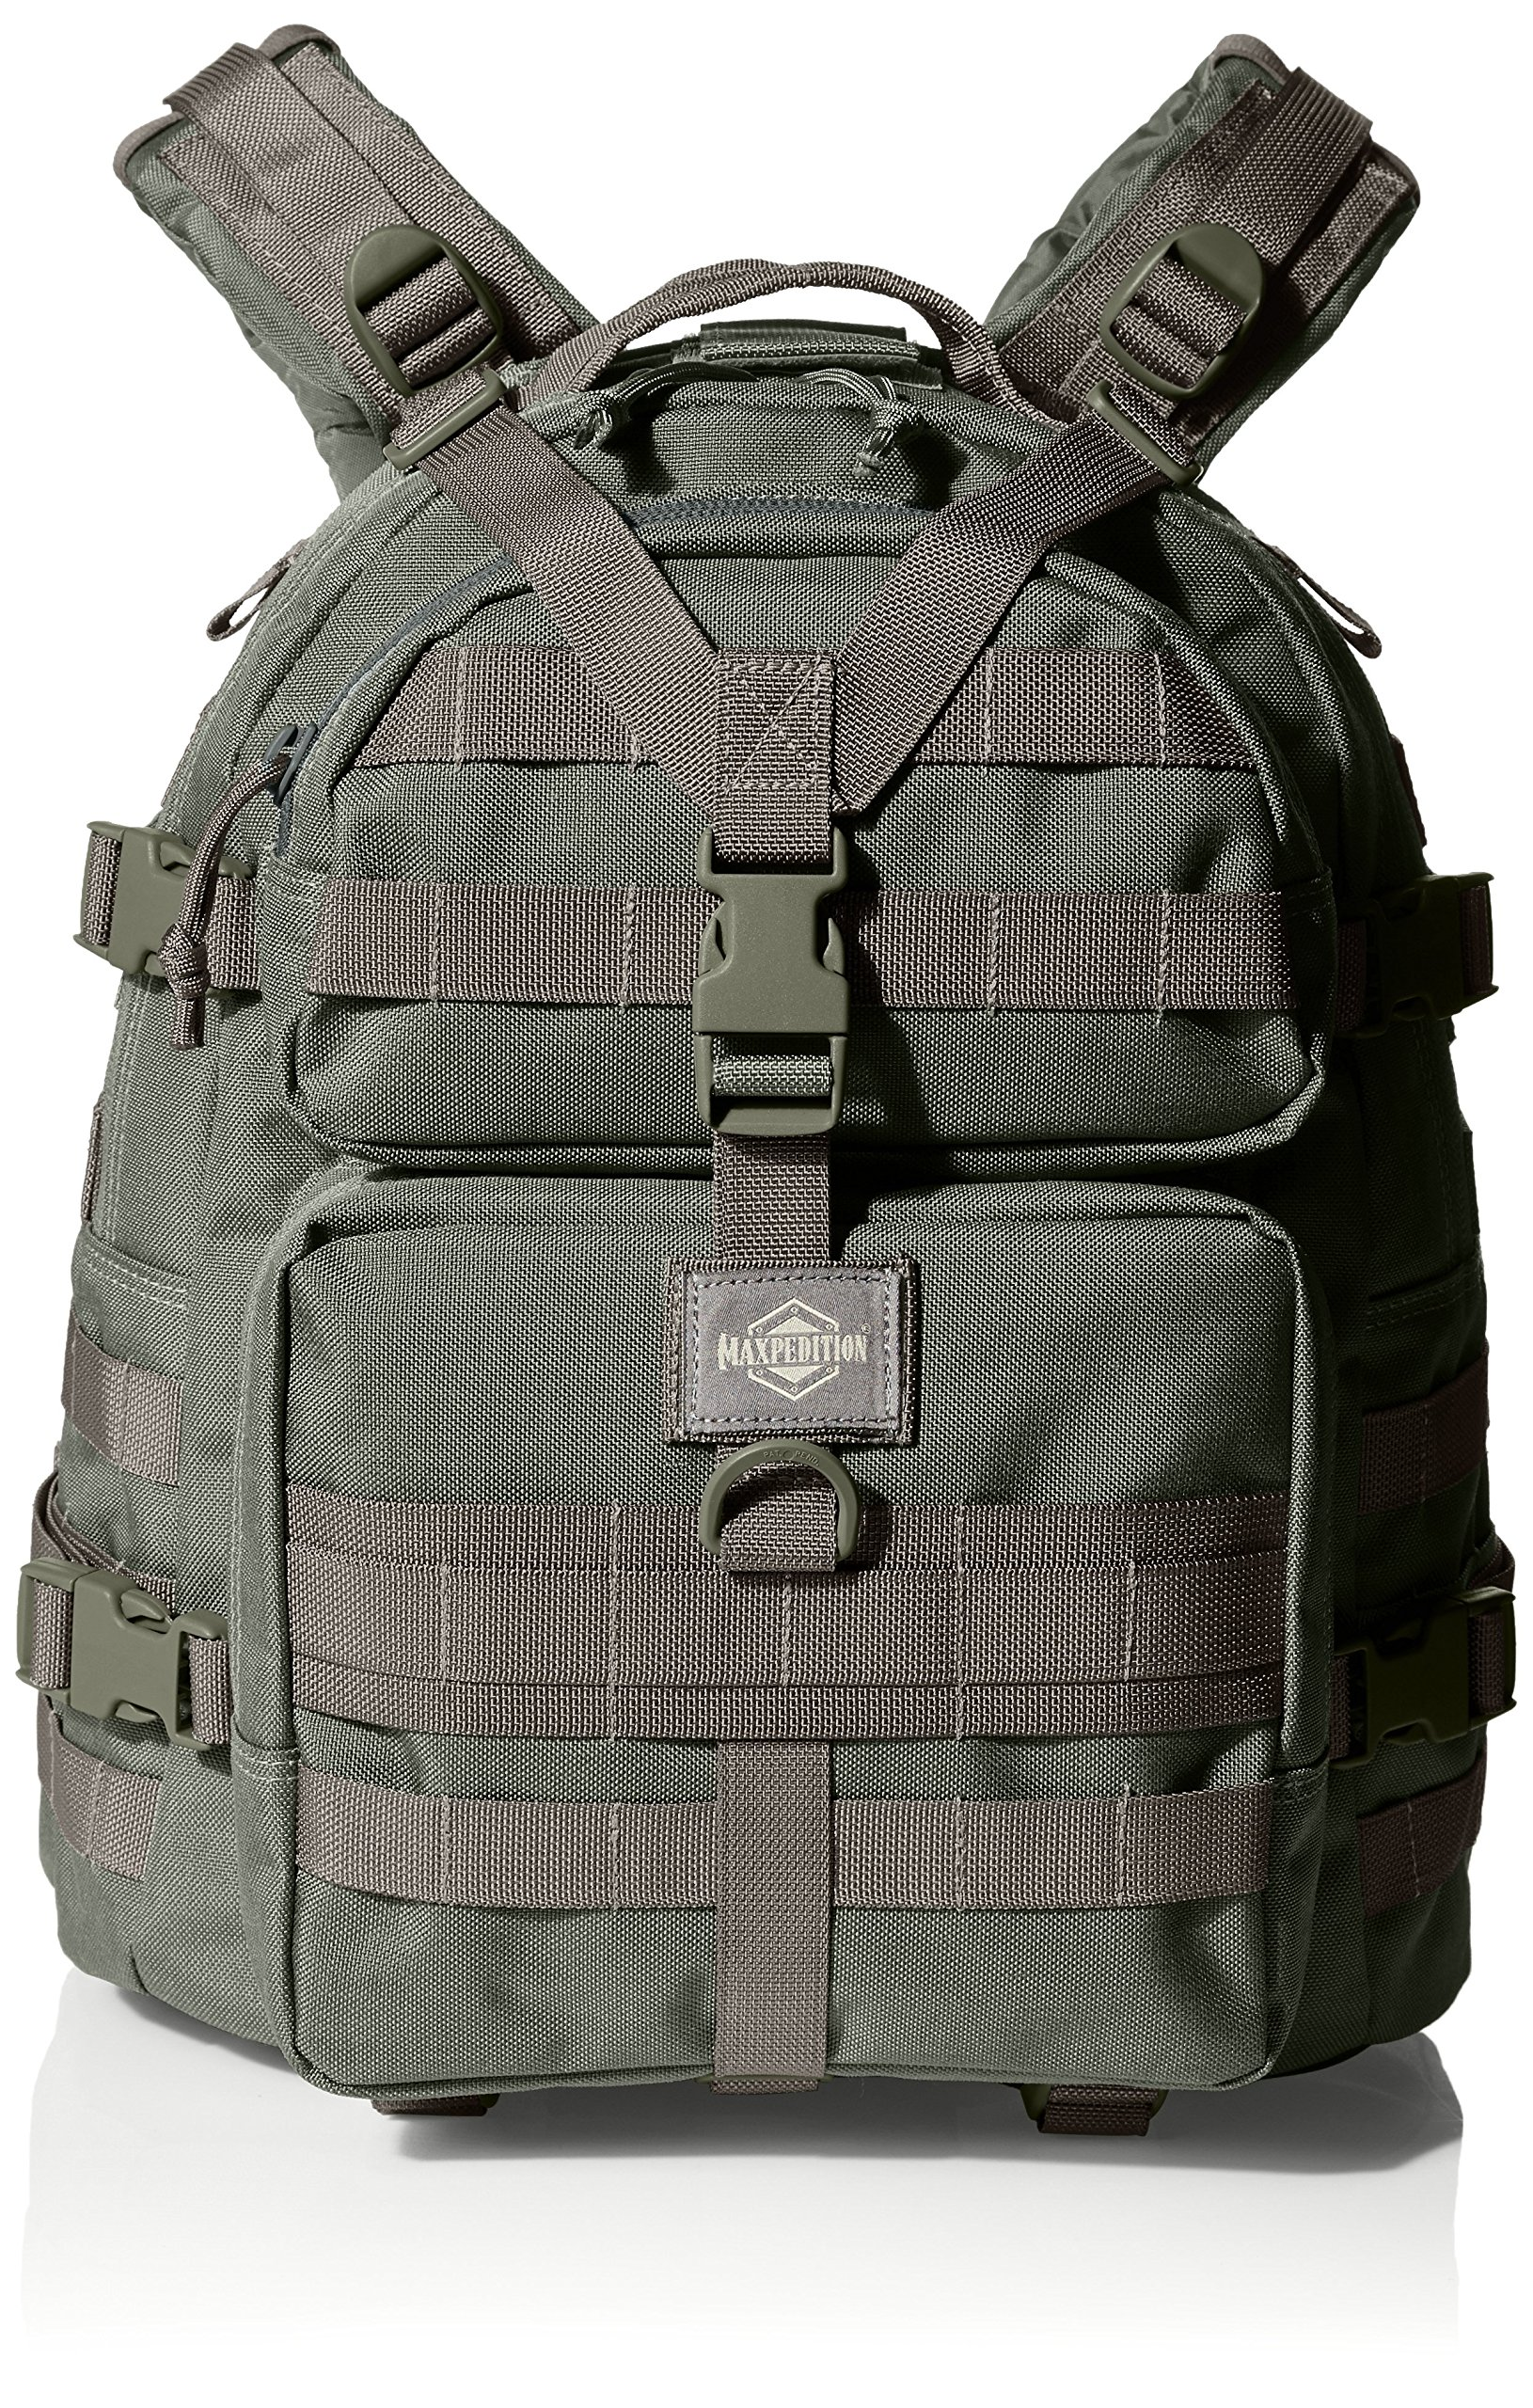 Maxpedition Condor-II Backpack (Foliage Green) by Maxpedition (Image #1)